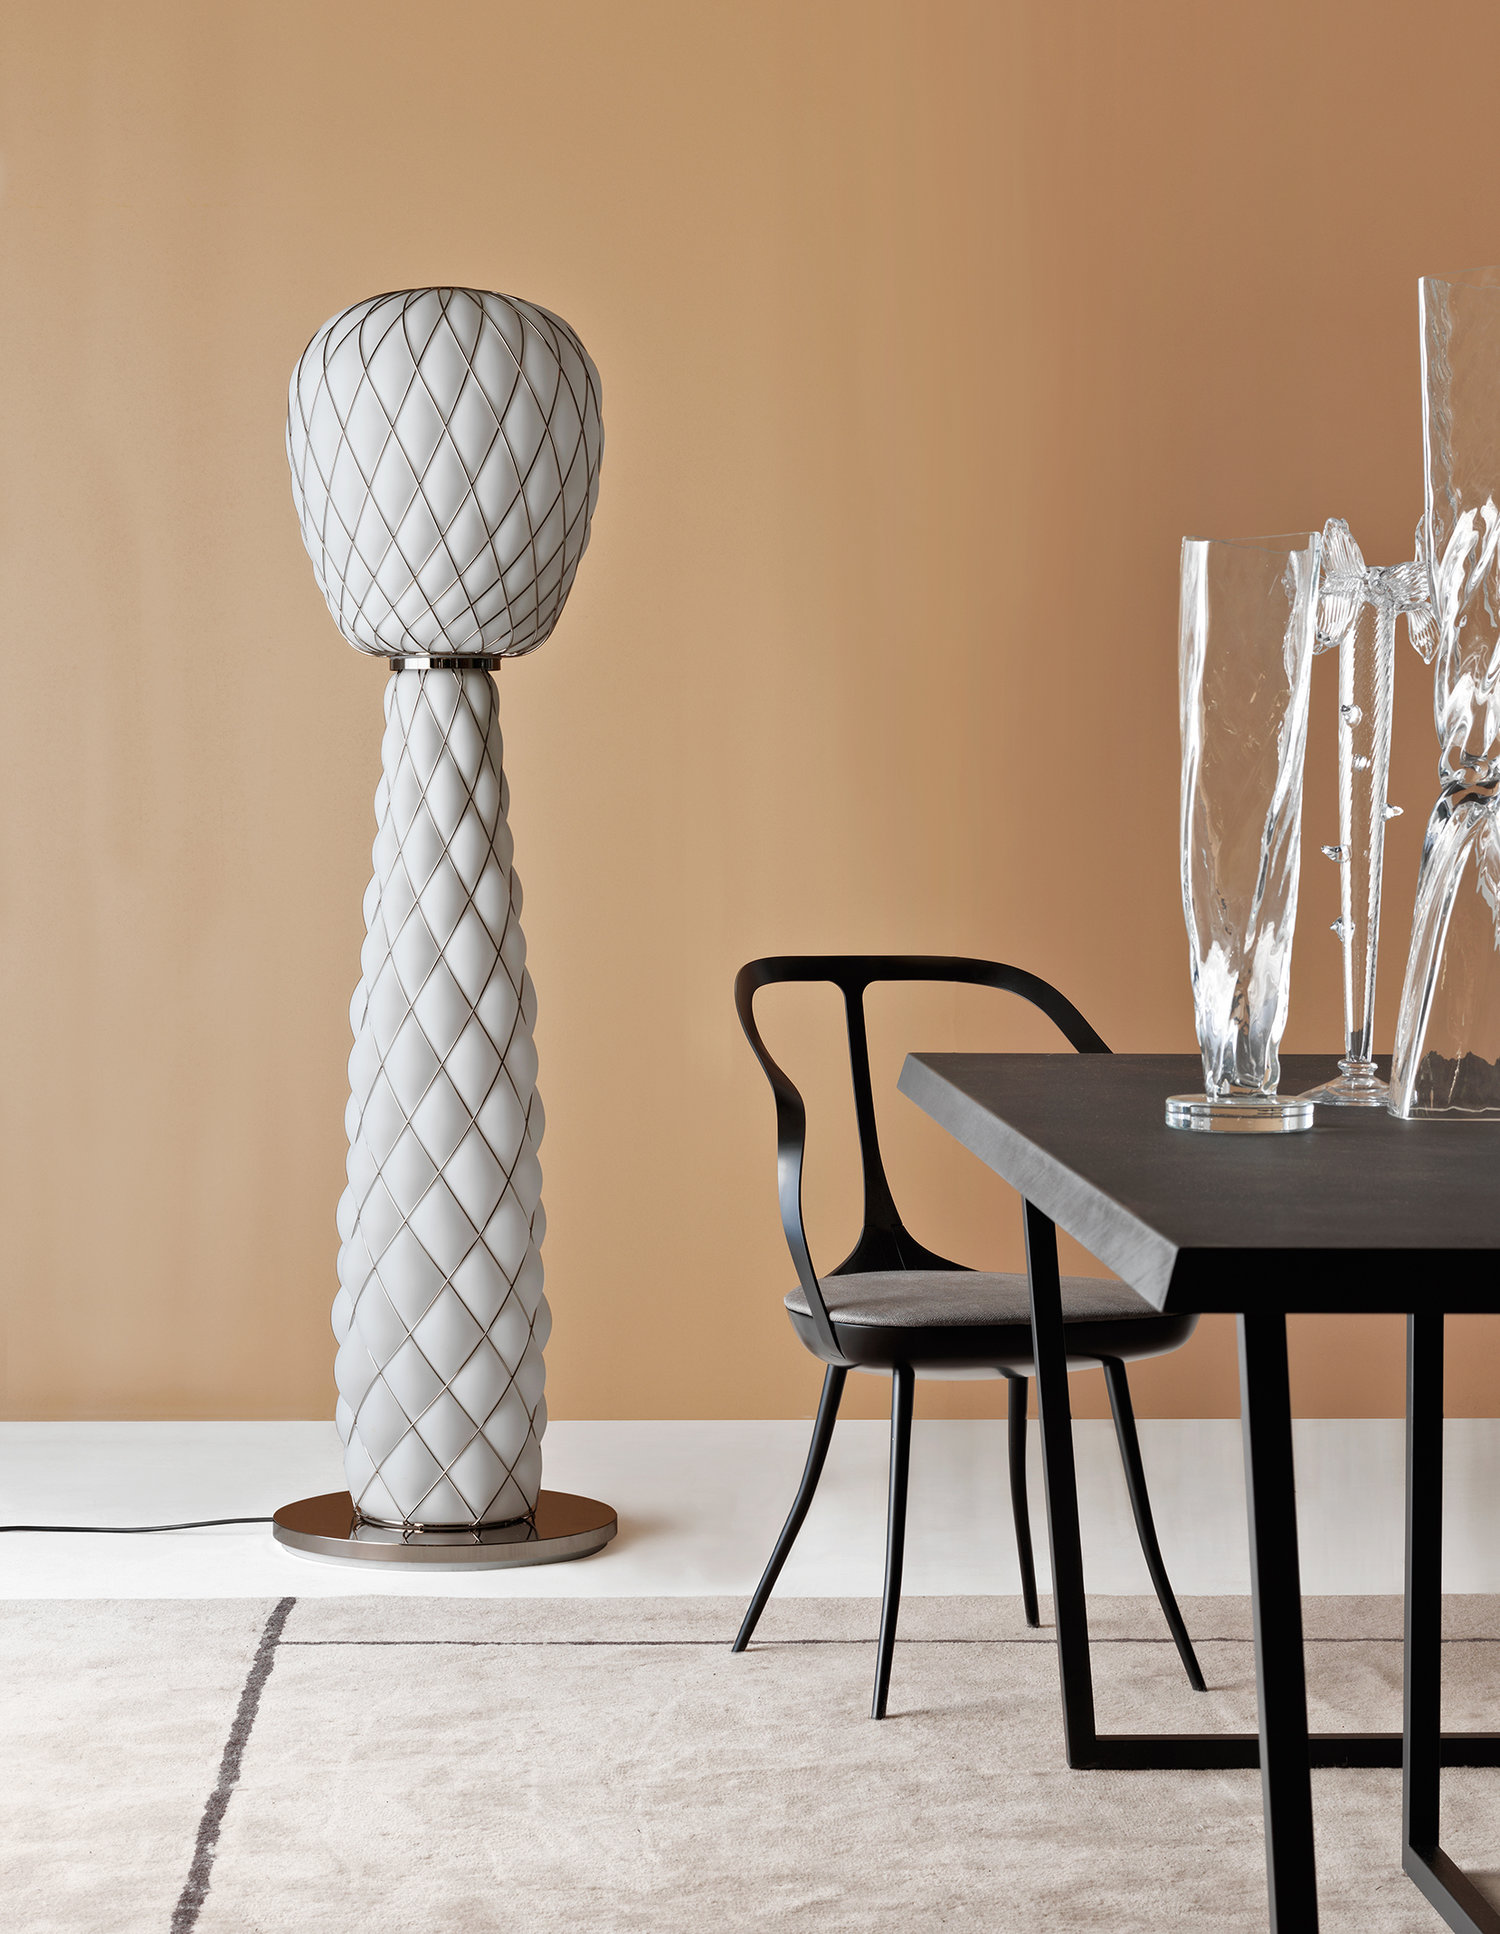 Floor Lamp - Browse our selection of Floor lamps